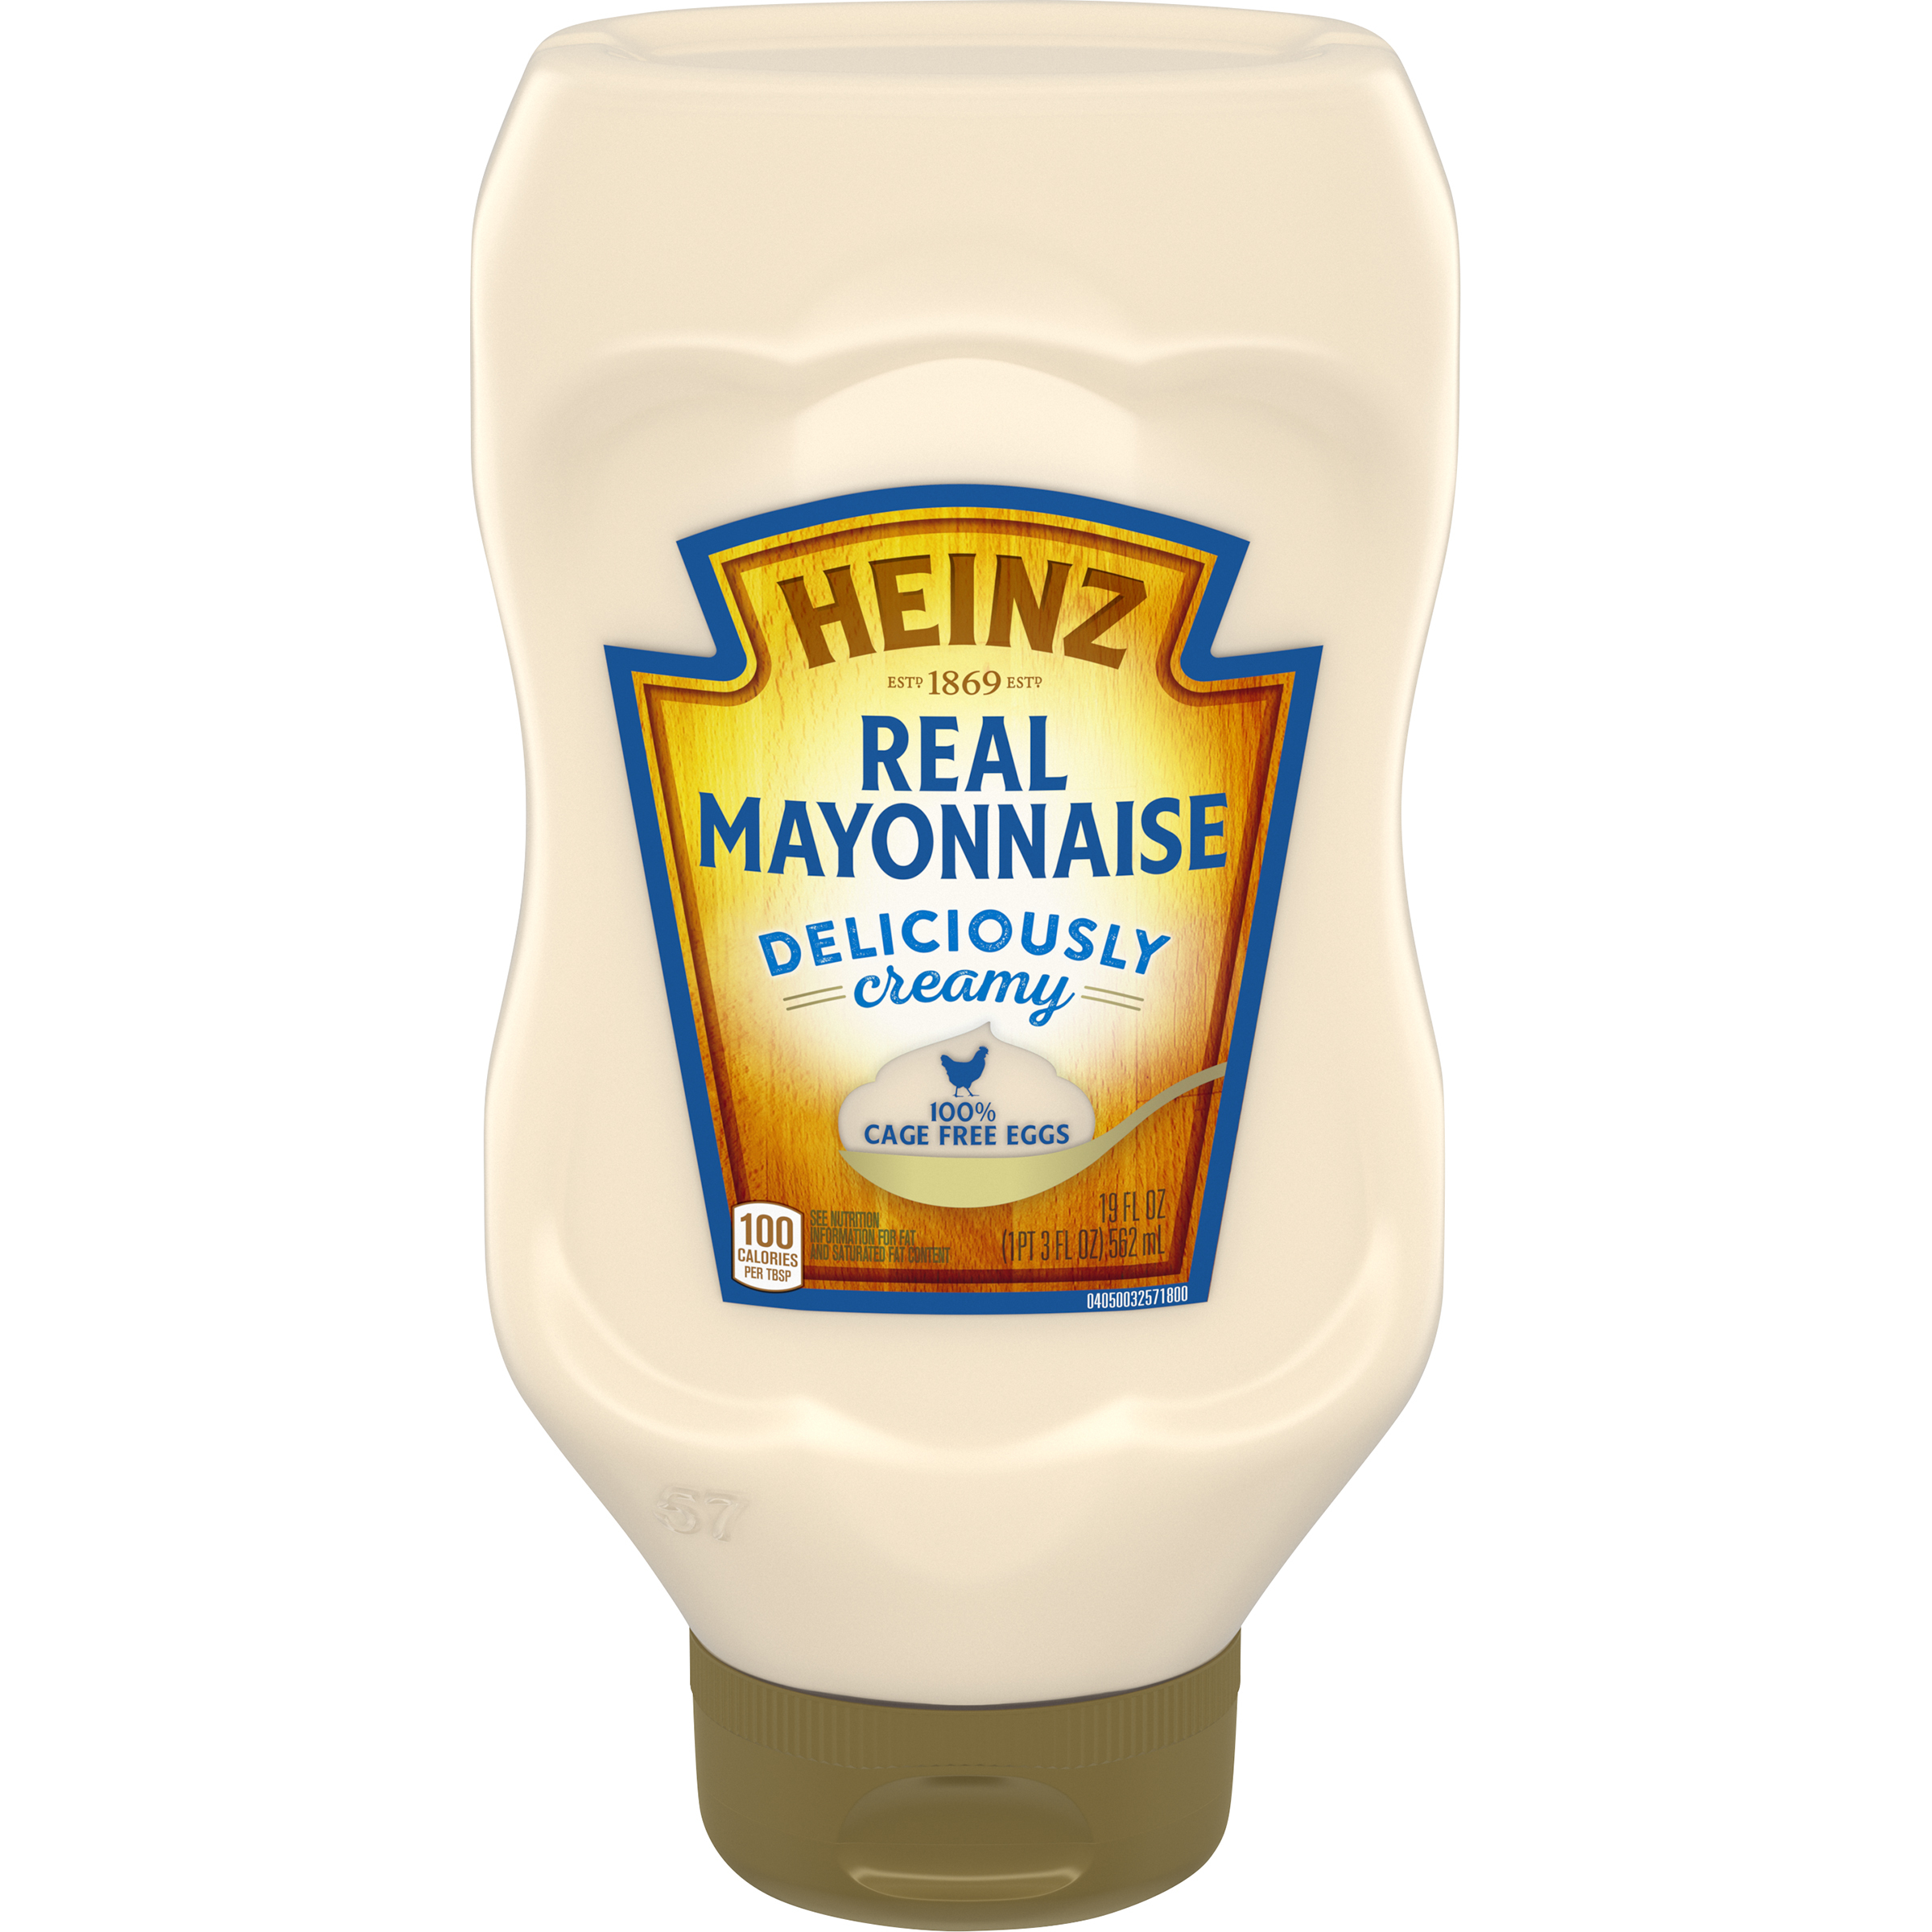 Heinz Real Mayonnaise - 100% Cage Free Eggs (19 oz.) image